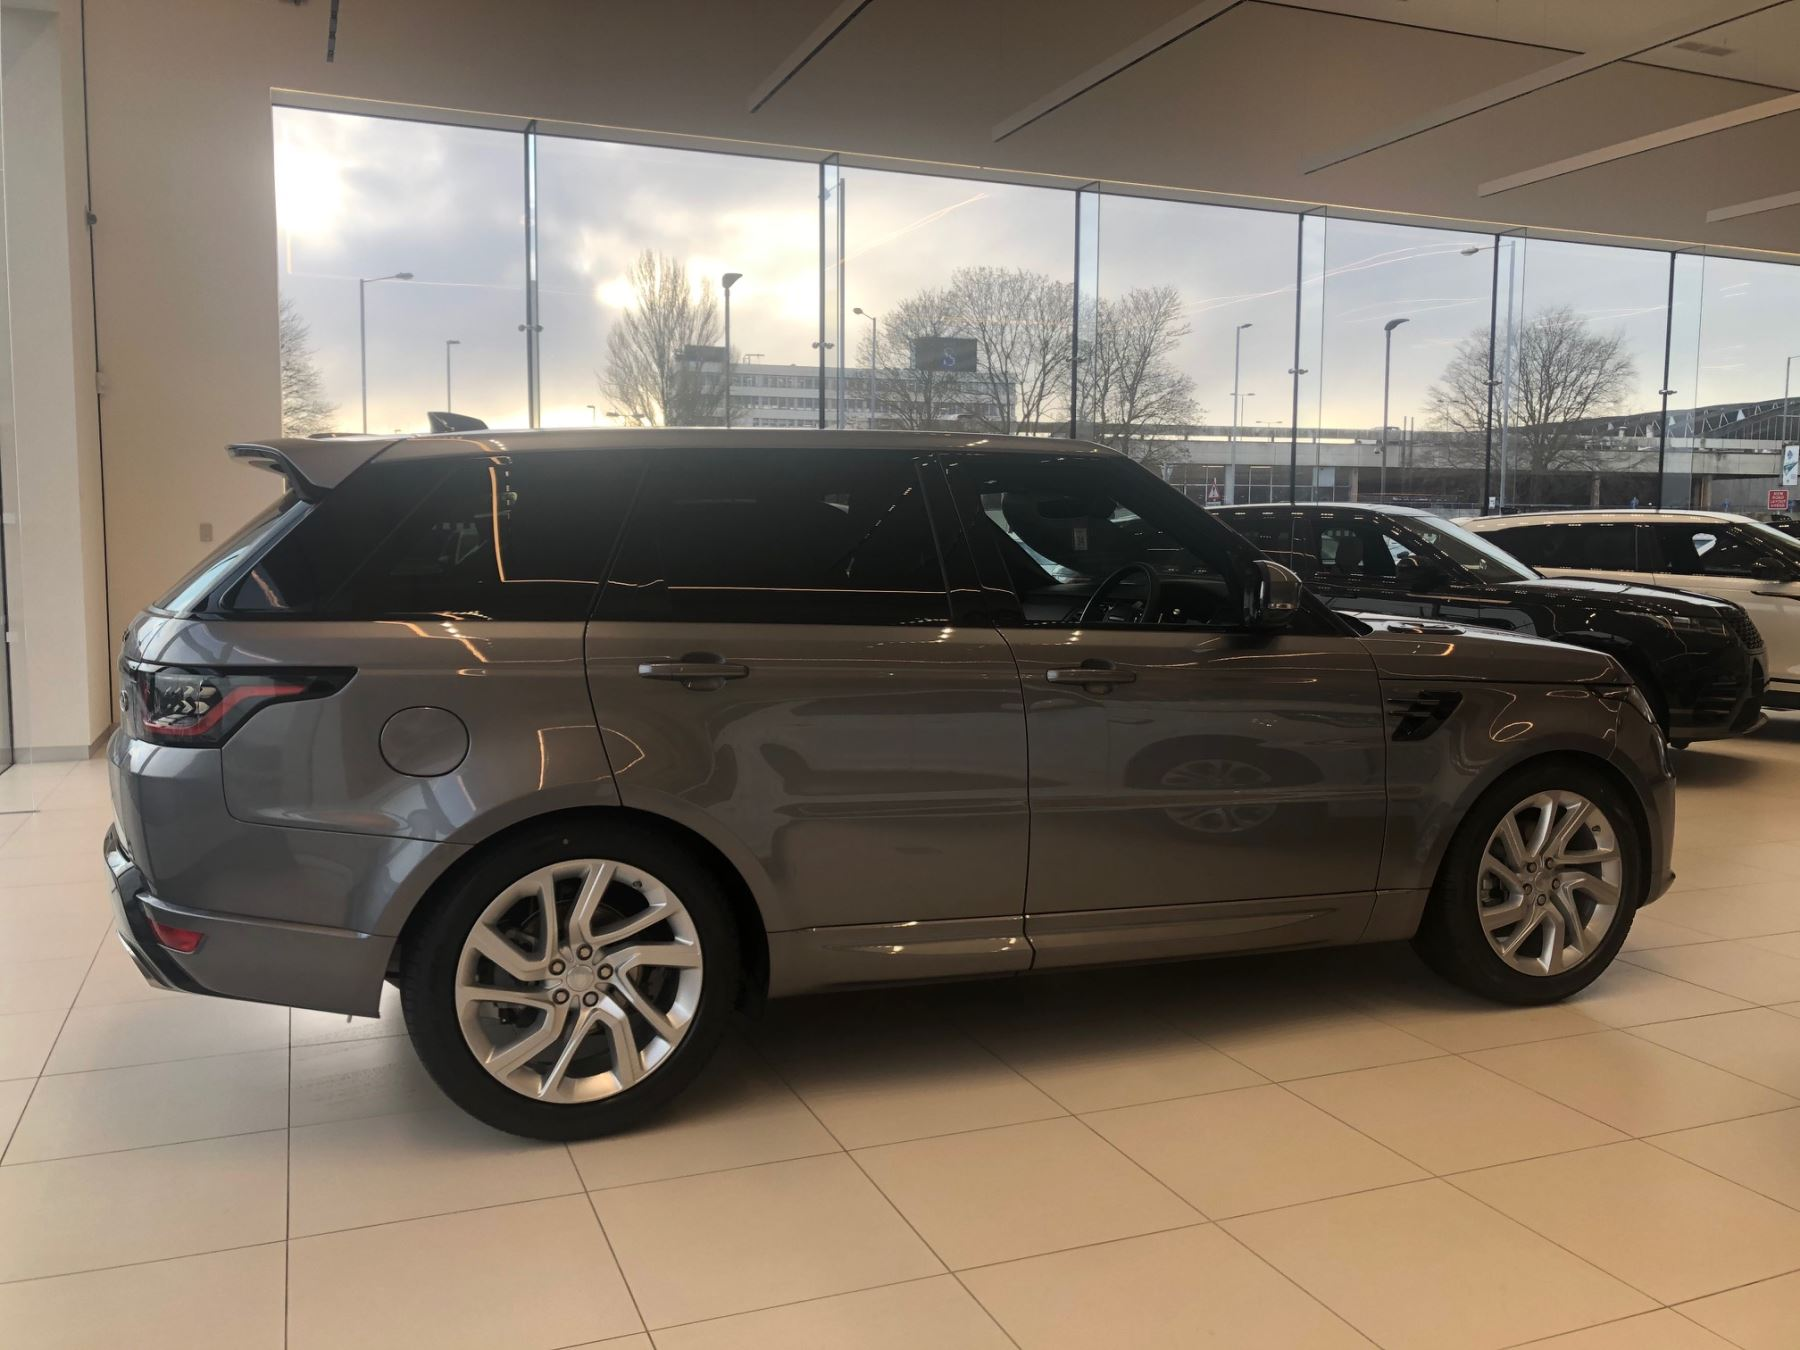 Land Rover Range Rover Sport 3.0 SDV6 HSE Dynamic (7 seat) image 6